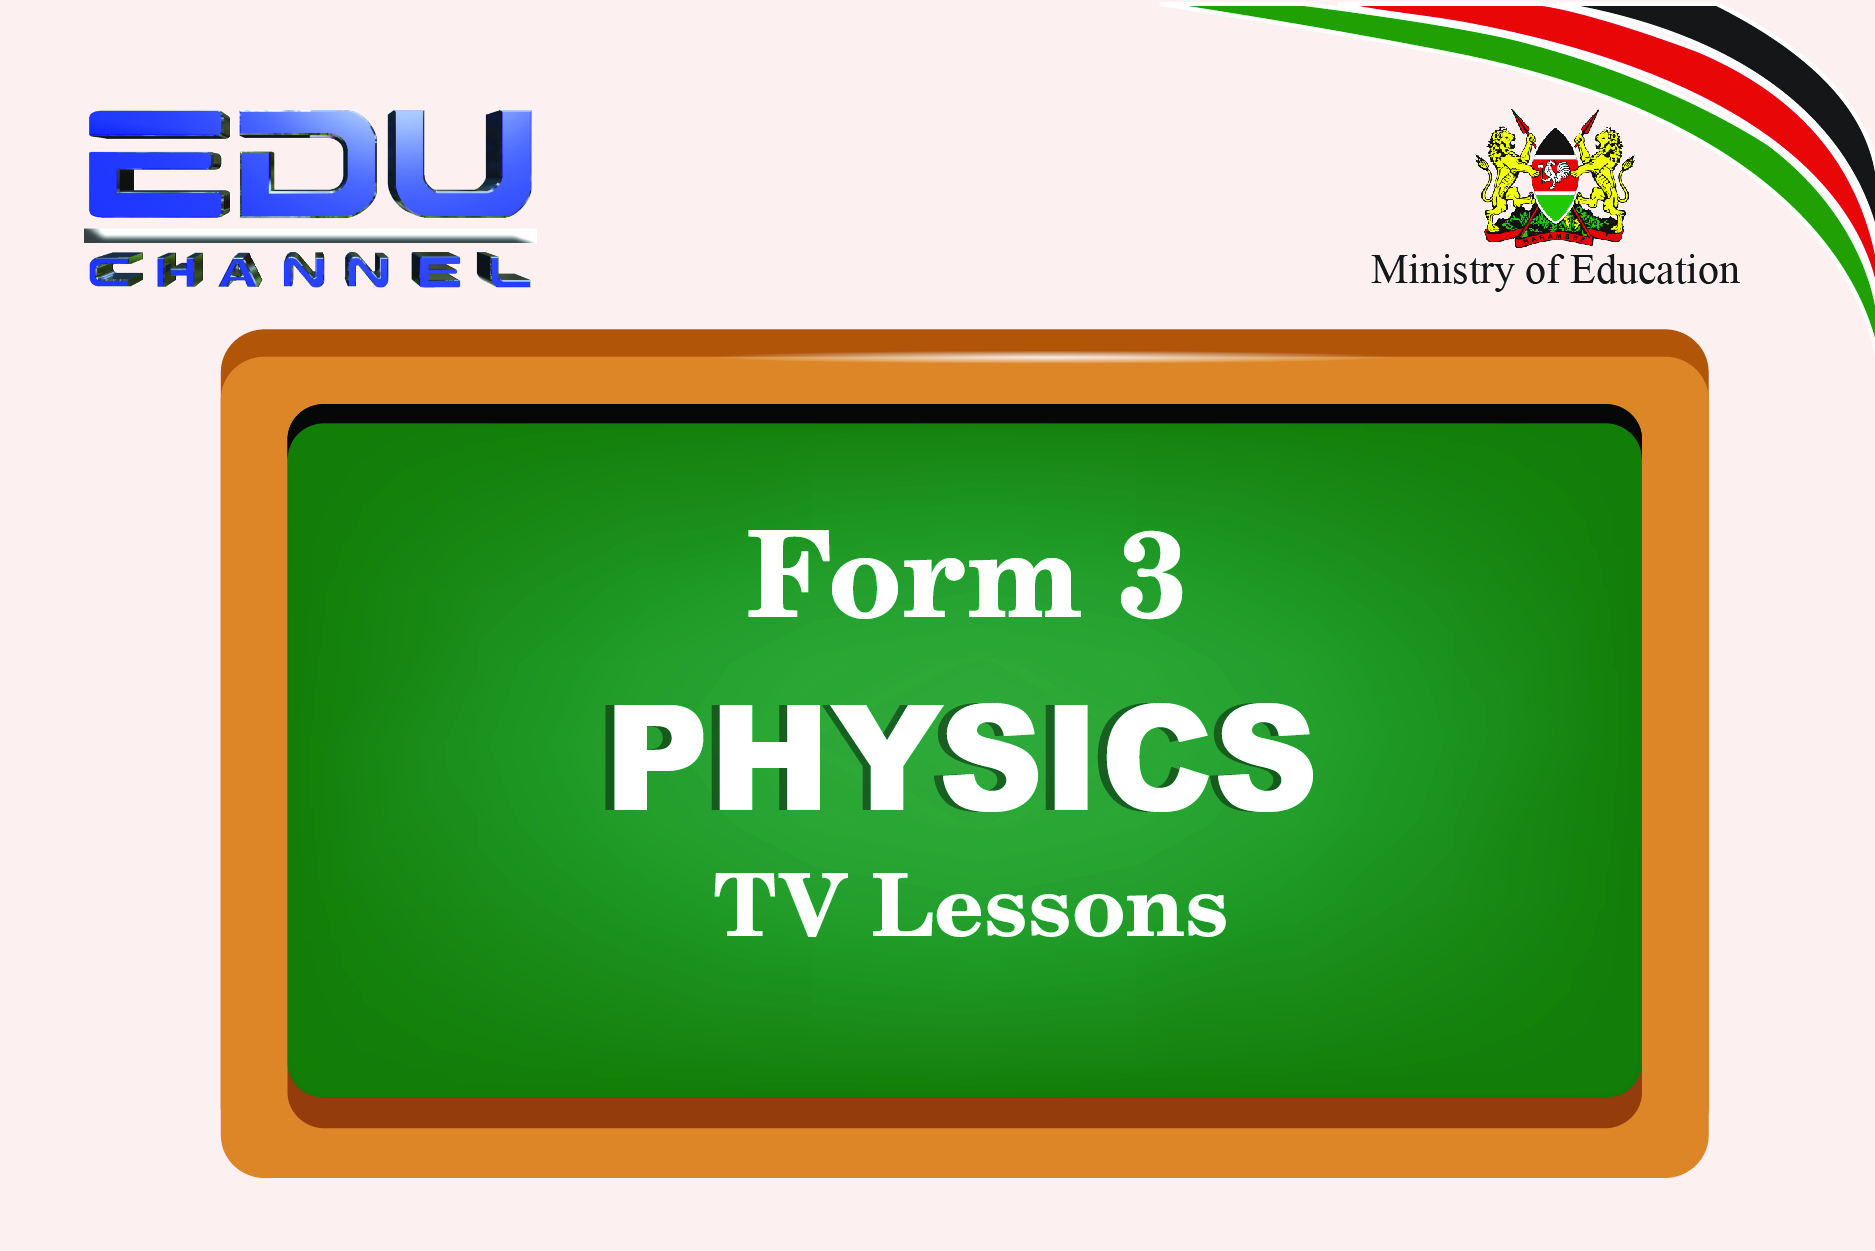 Form 3 Physics Lesson 1: Linear Motion